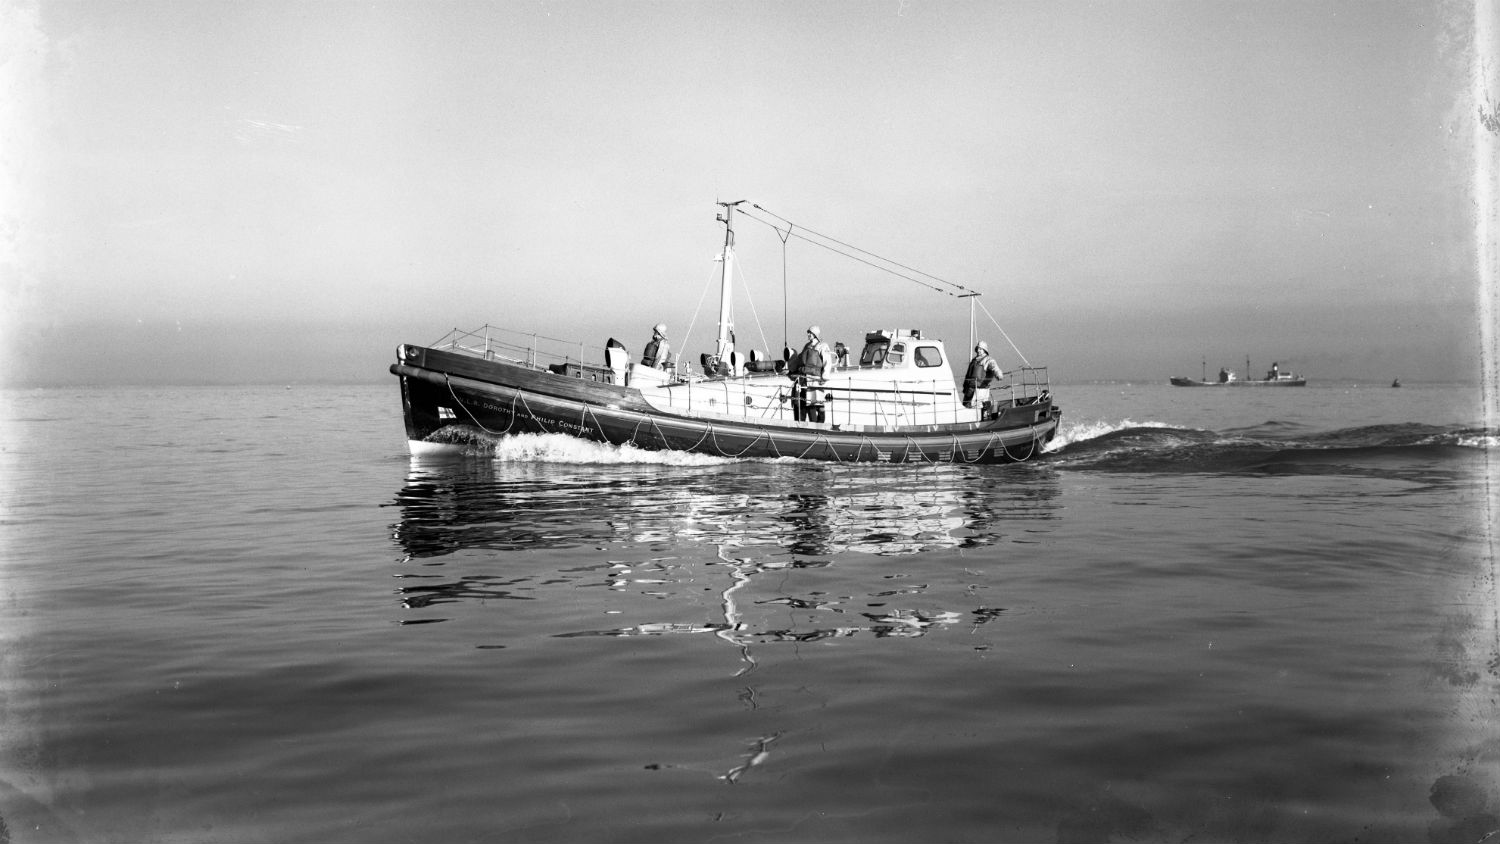 Black and white image of Shoreham lifeboat, Dorothy and Philip Constant, while on trials